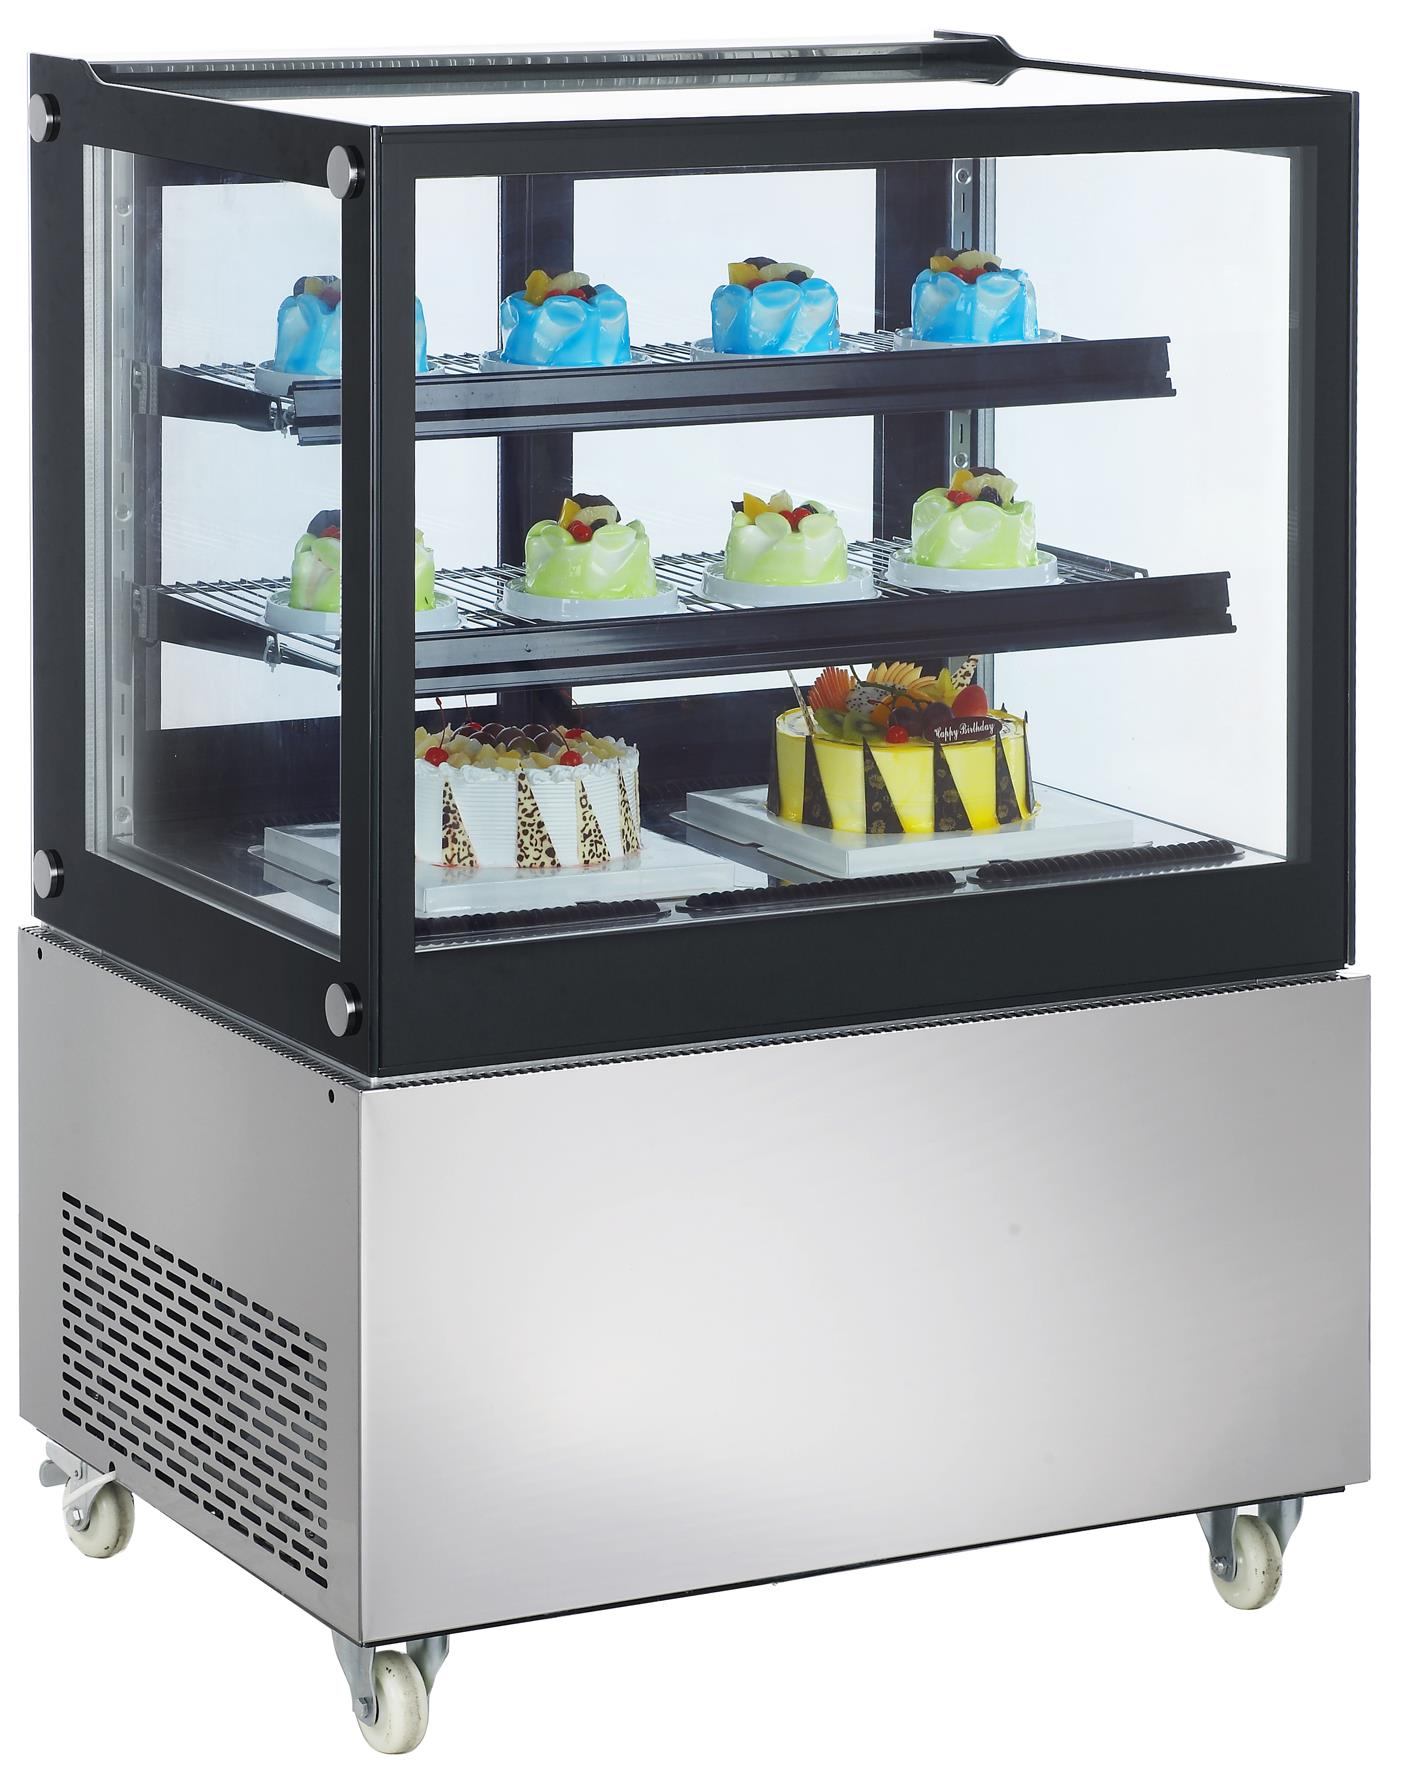 refrigerated-floor-standing-cake-display-arc-270z-395-p